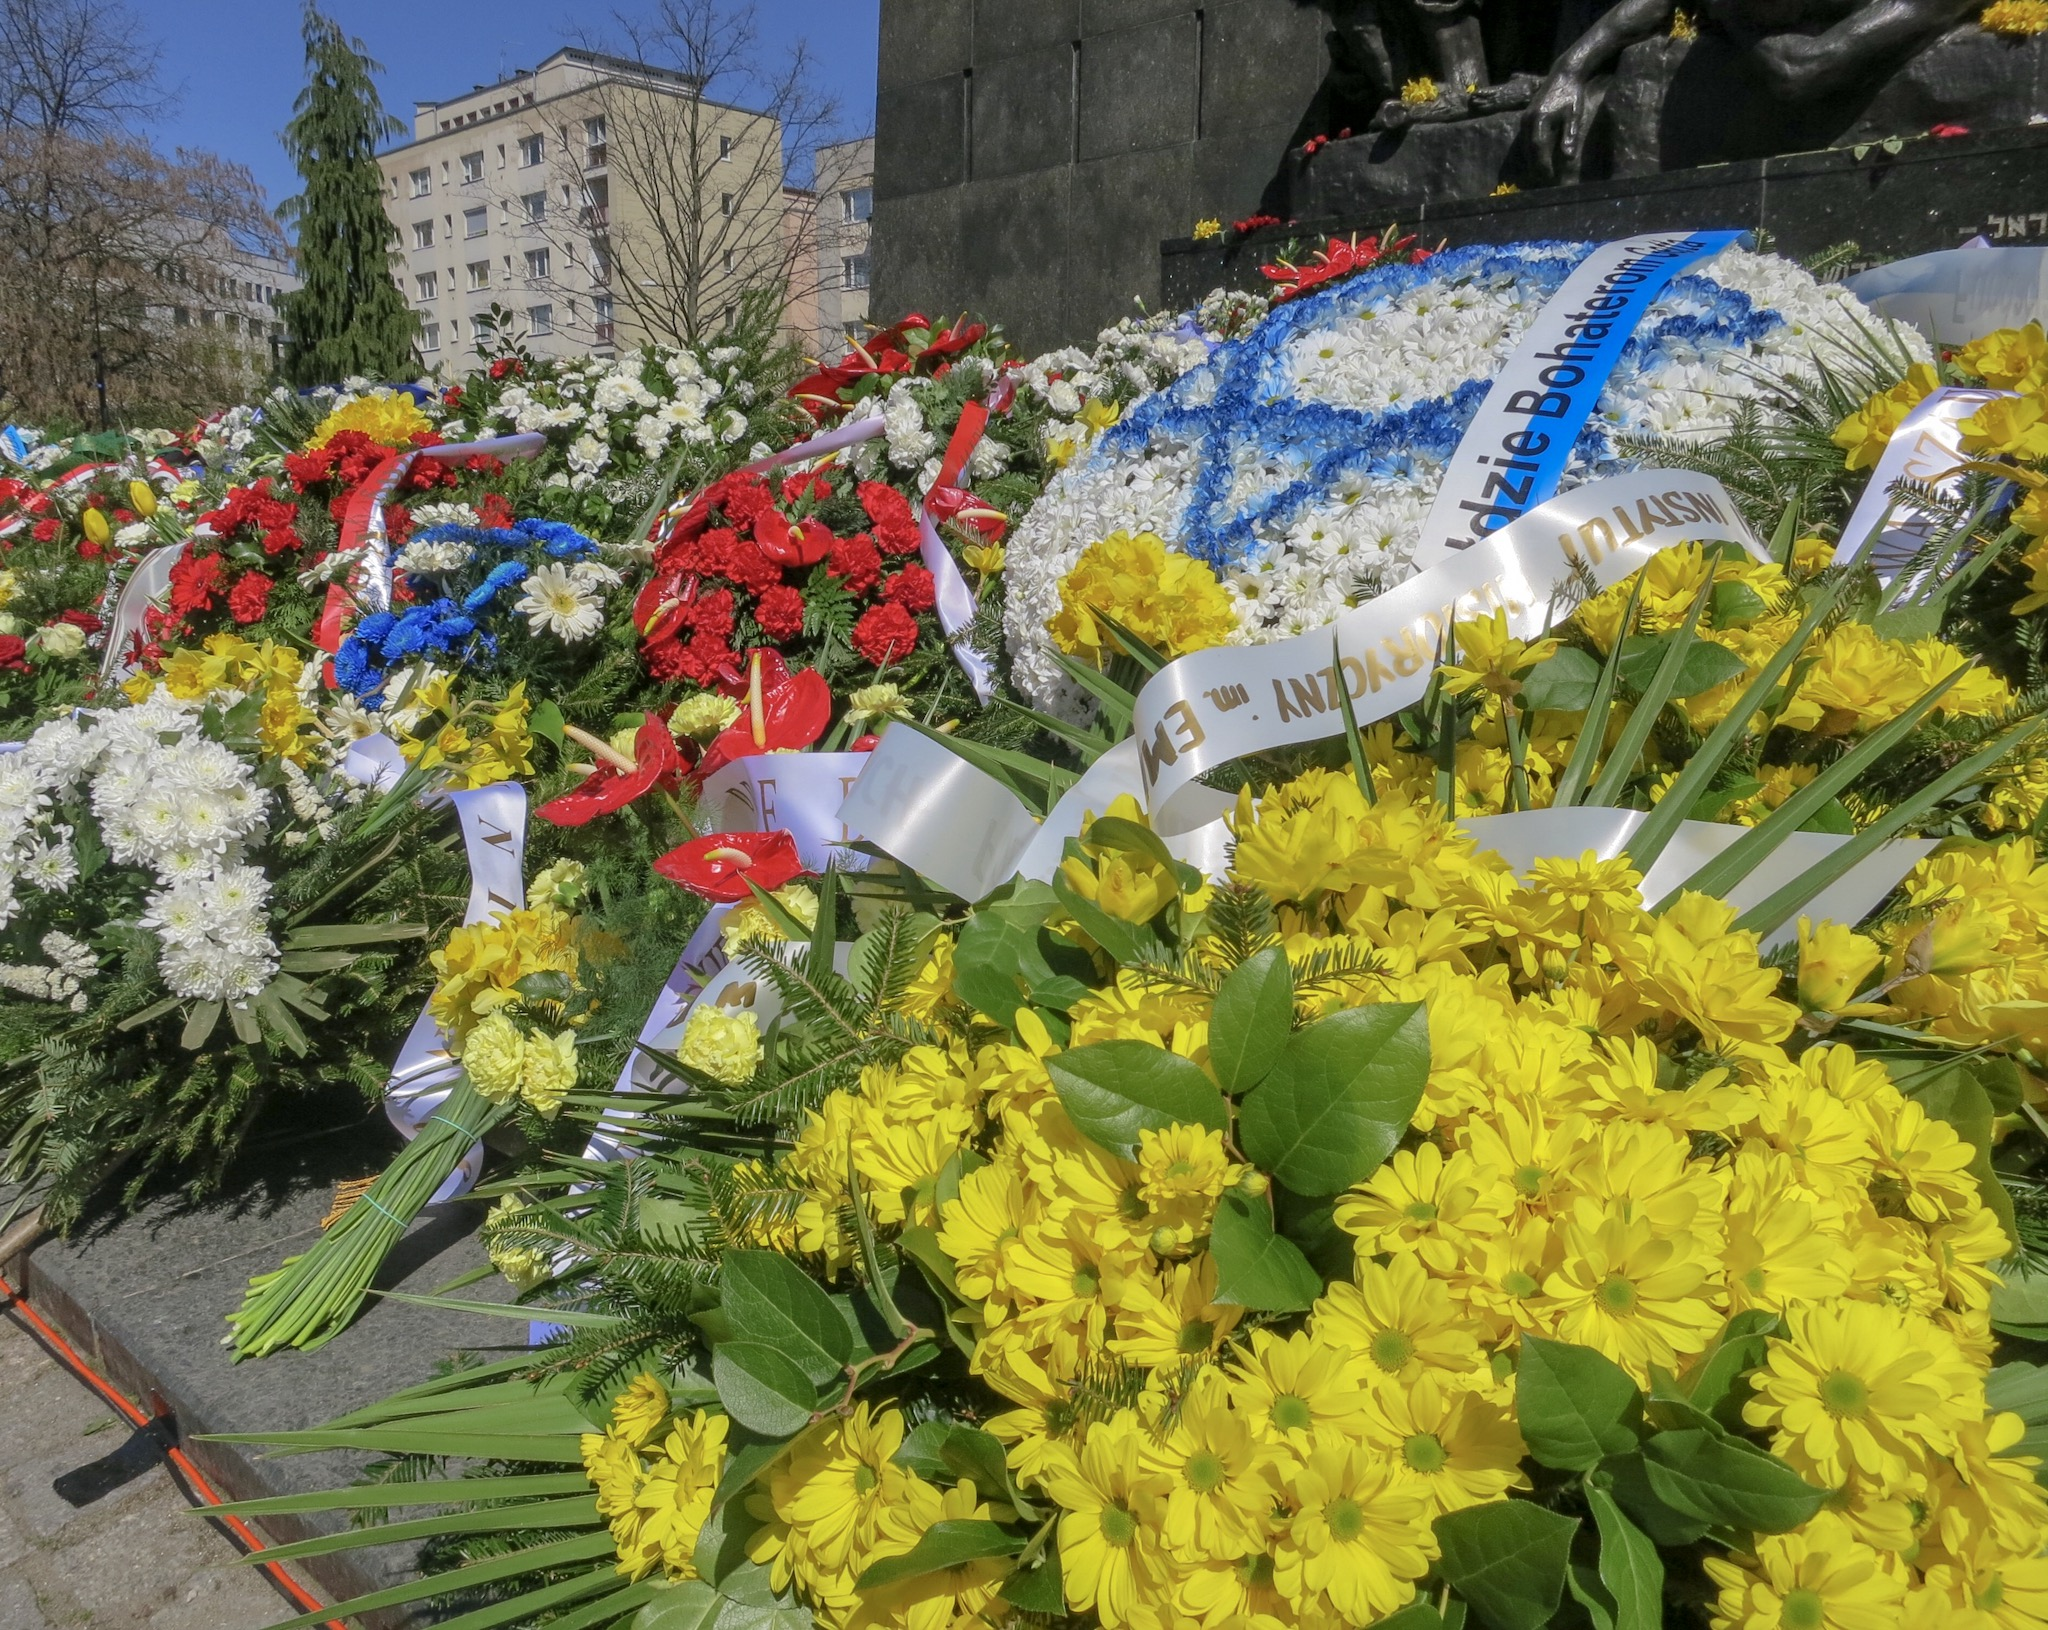 Wreaths laid at the Heroes of the Ghetto Monument in commemoration of the 76th Anniversary of the Warsaw Ghetto Uprising